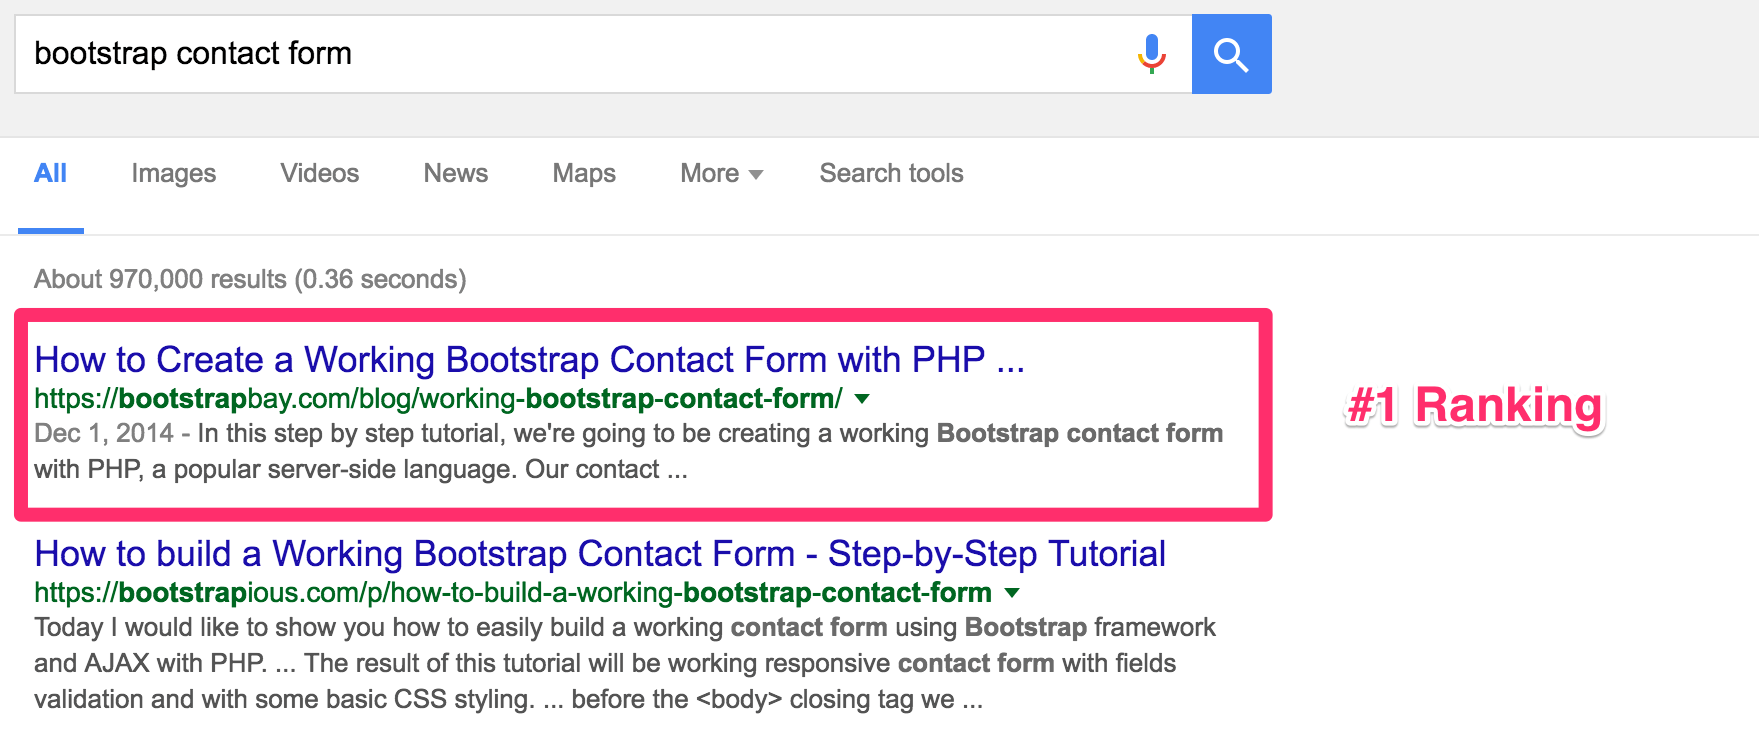 Bootstrap contact form ranking